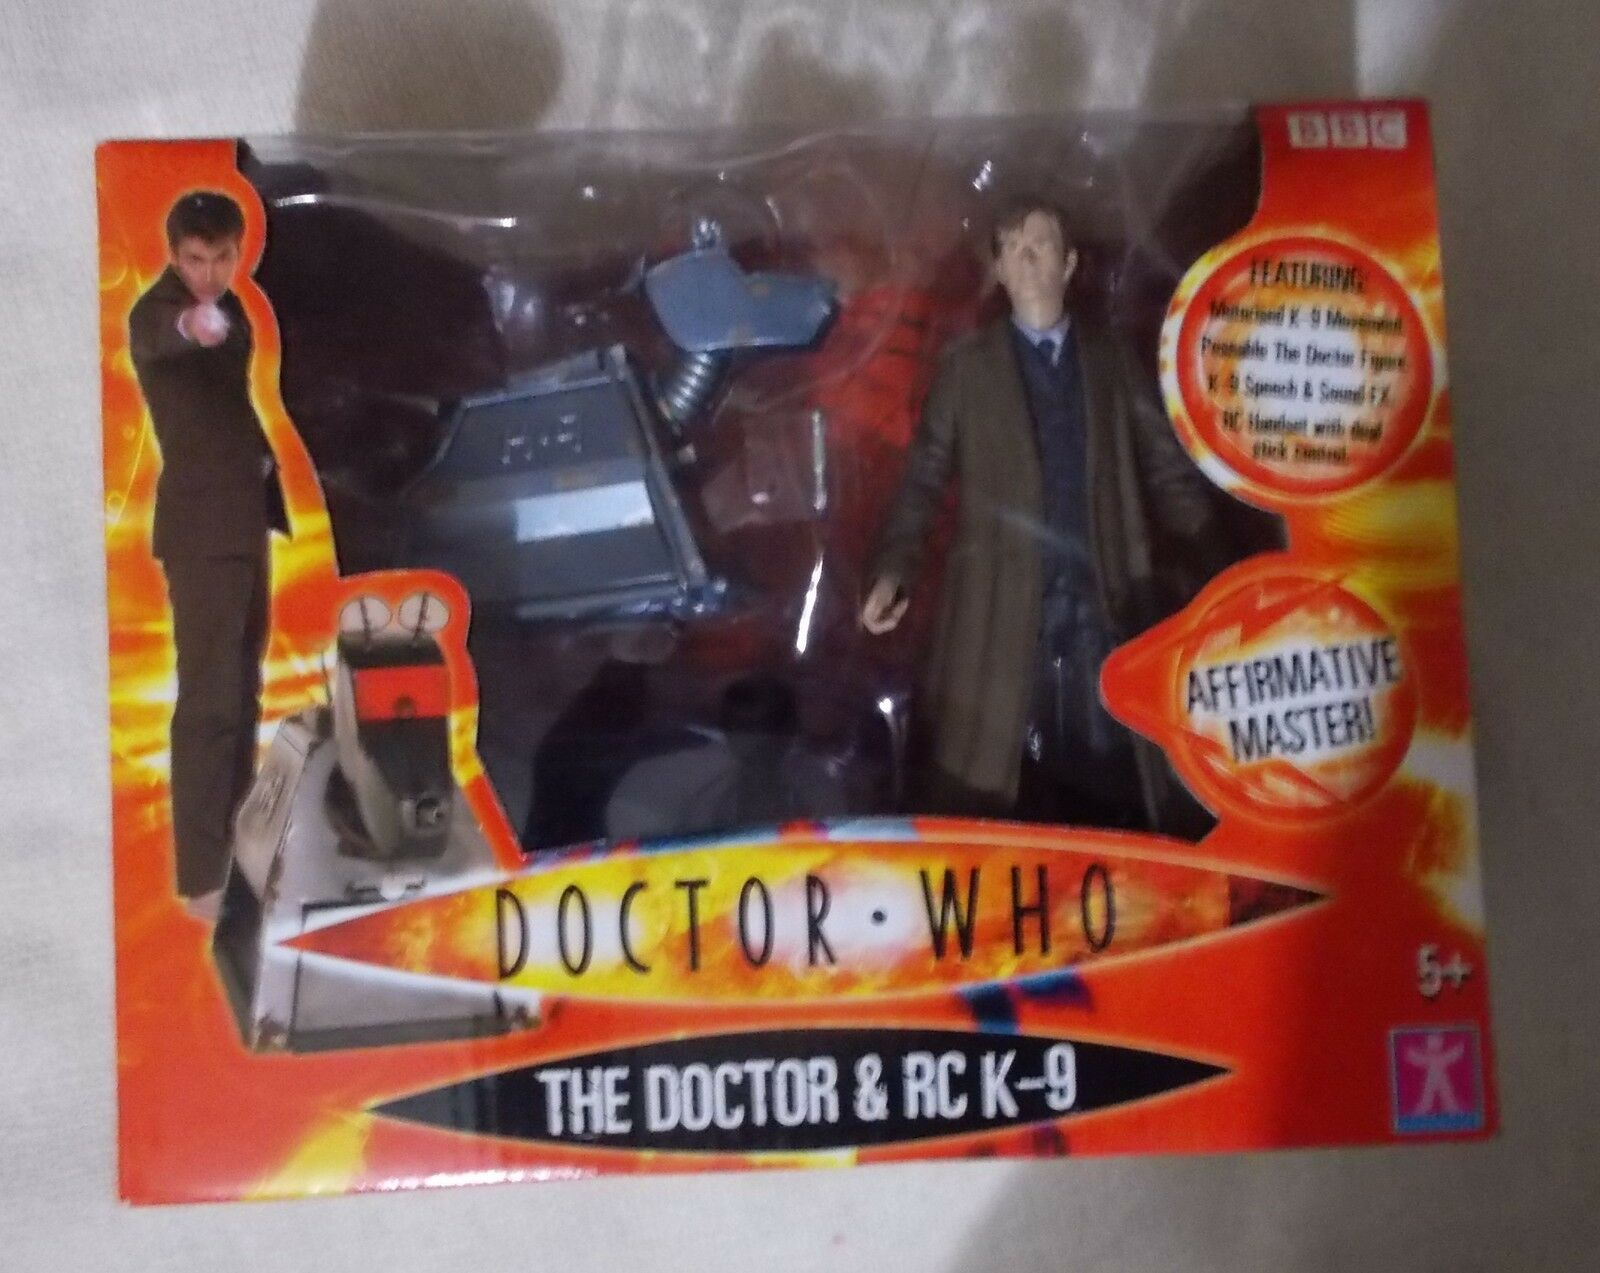 Doctor Who - The DOCTOR & RC K-9 - 27Hz - New